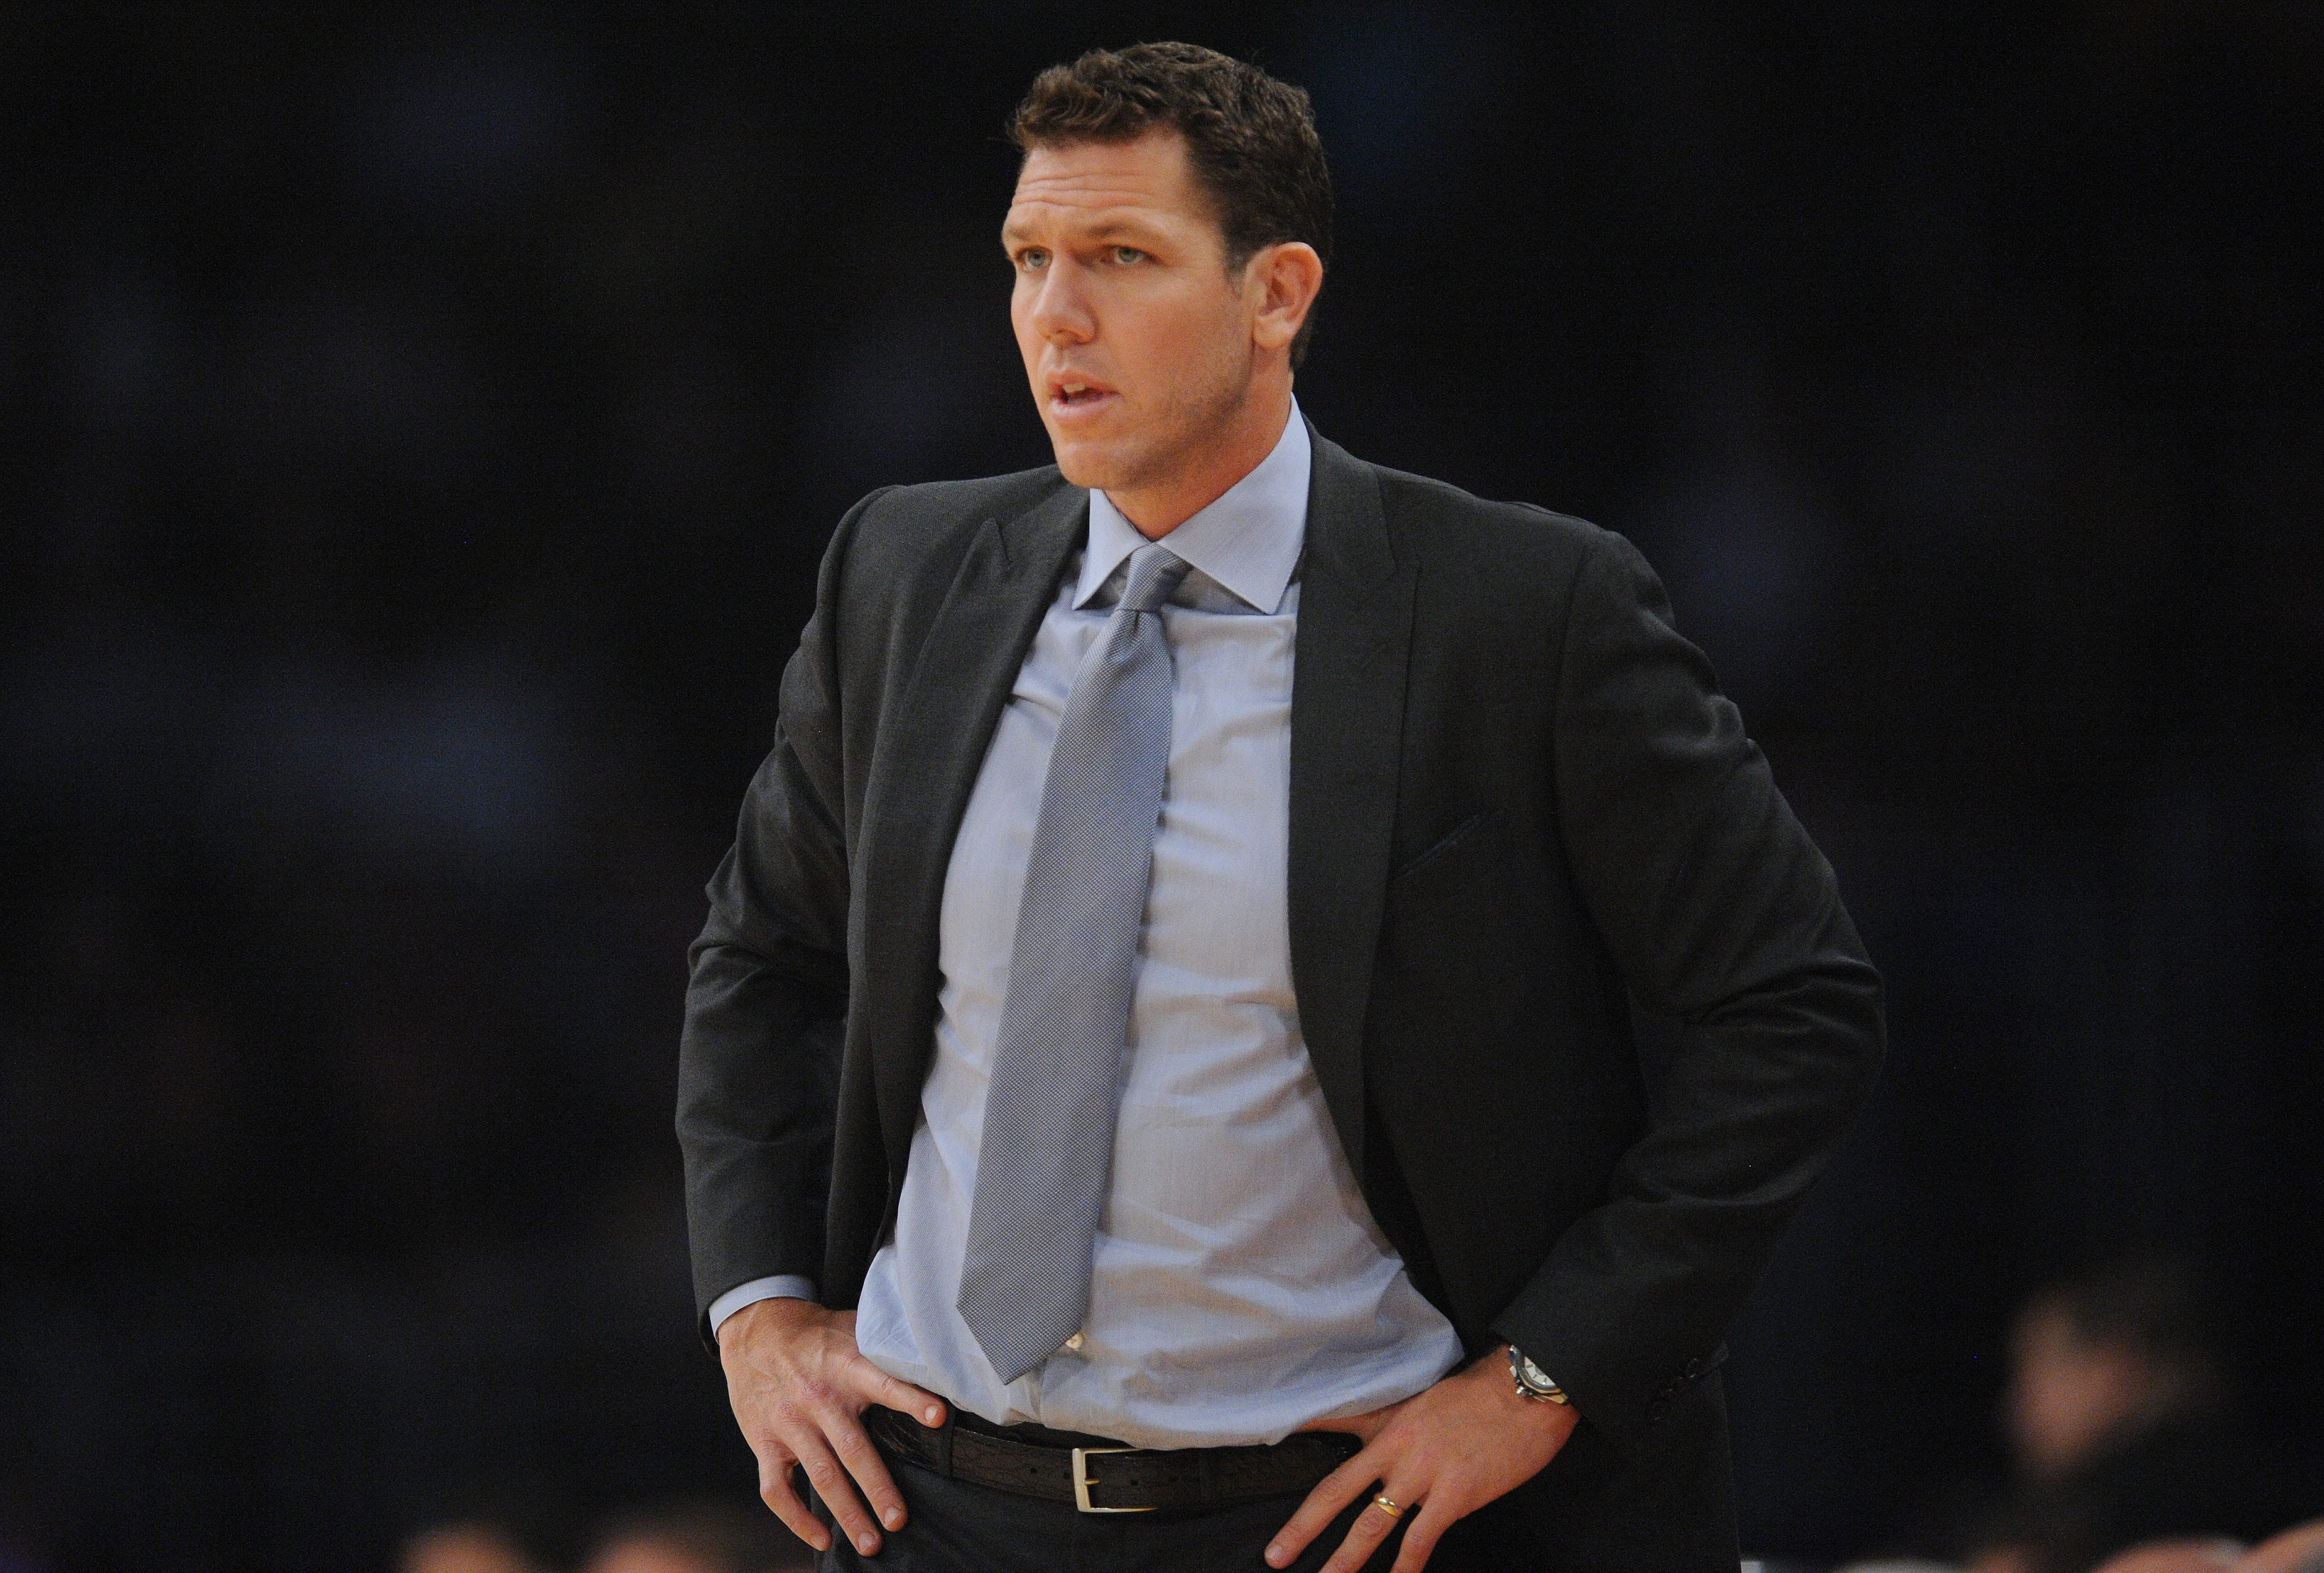 Lakers coach Luke Walton sounds off on inconsistent officiating after OT loss